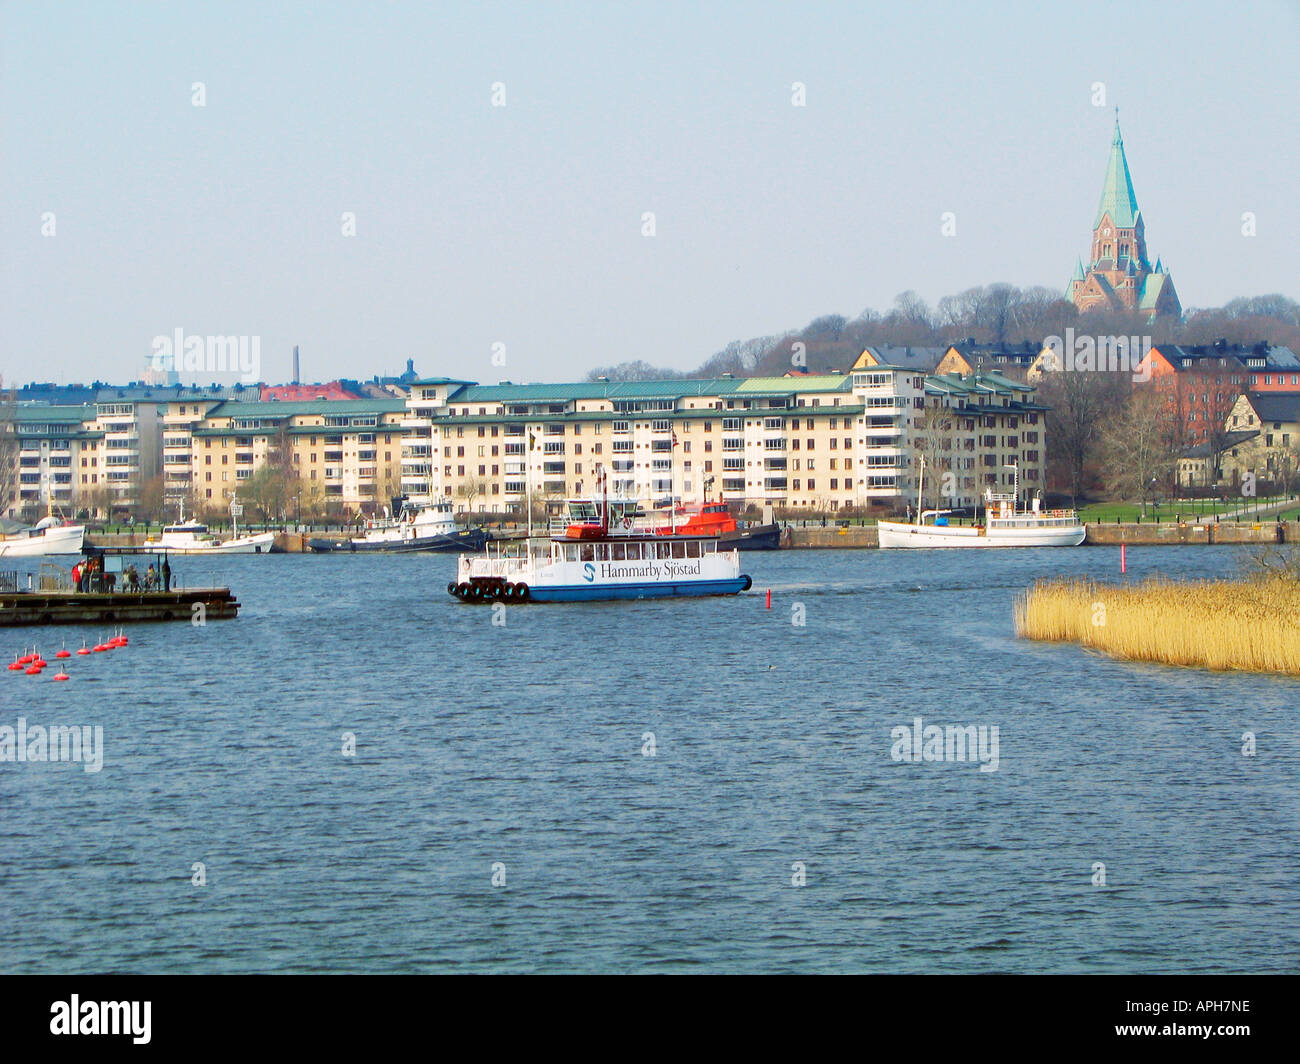 A ferry crosses the Hammarby Sjö lake in the modern residential area Hammarby Sjöstad in Stockholm, Sweden. - Stock Image